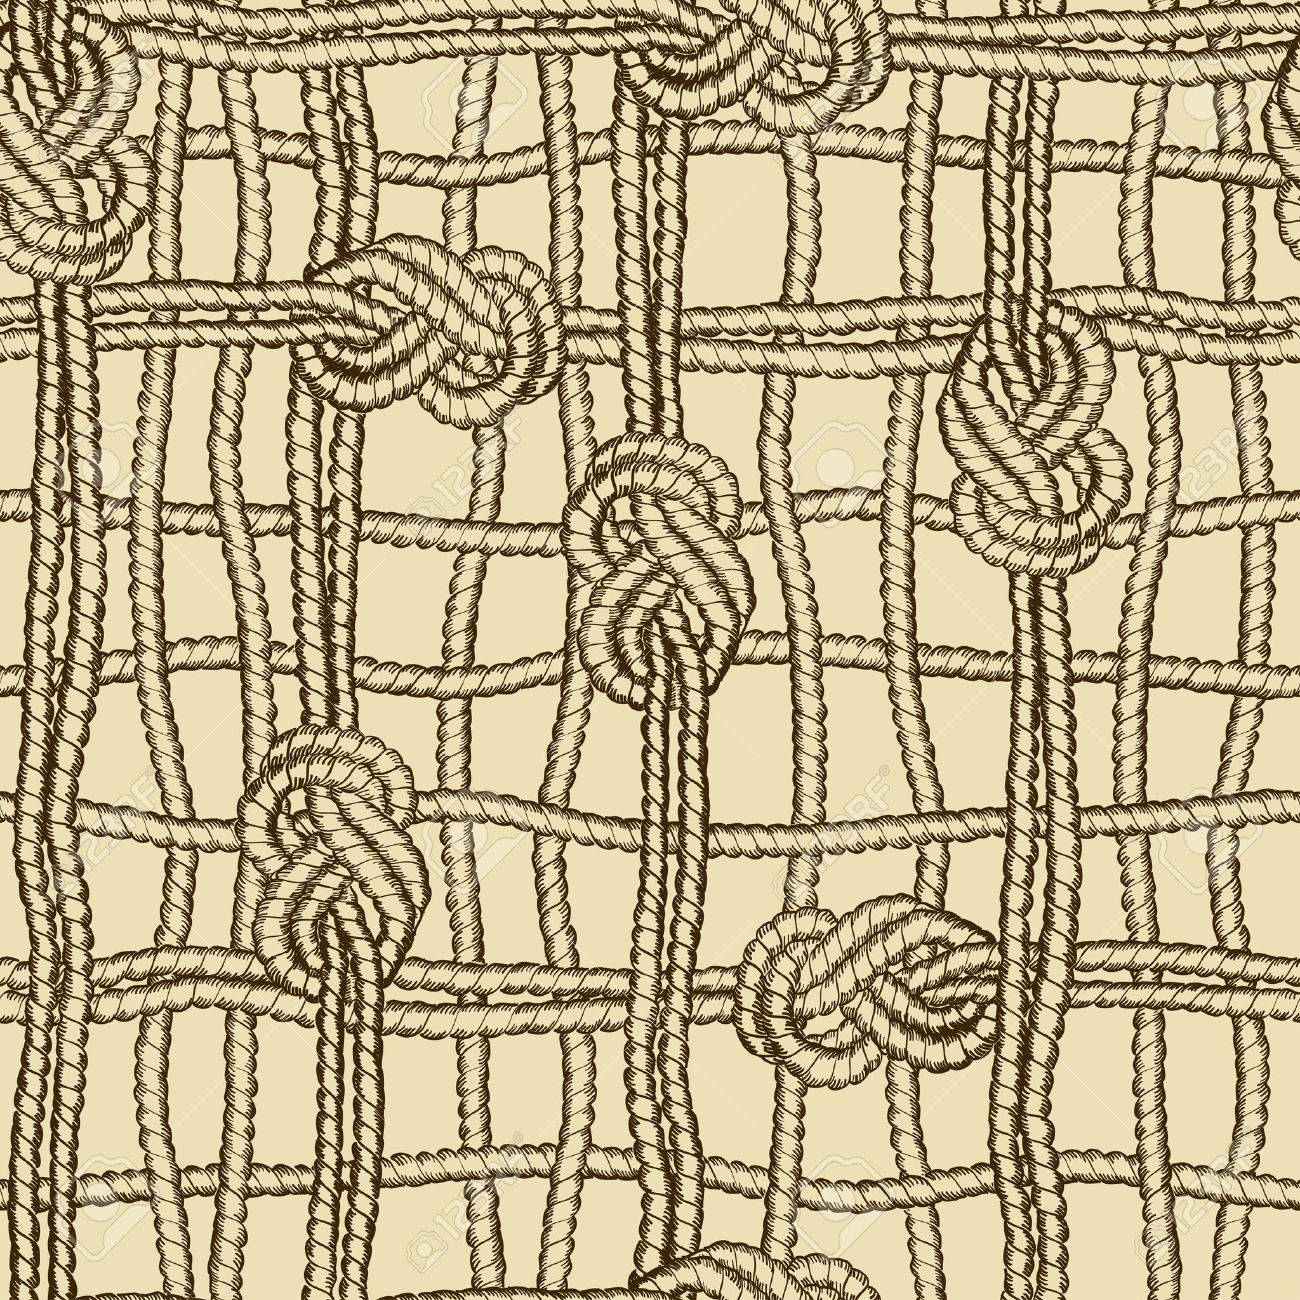 1300x1300 Hand Drawn Nautical Seamless Pattern Of Ropes Grid With Marine